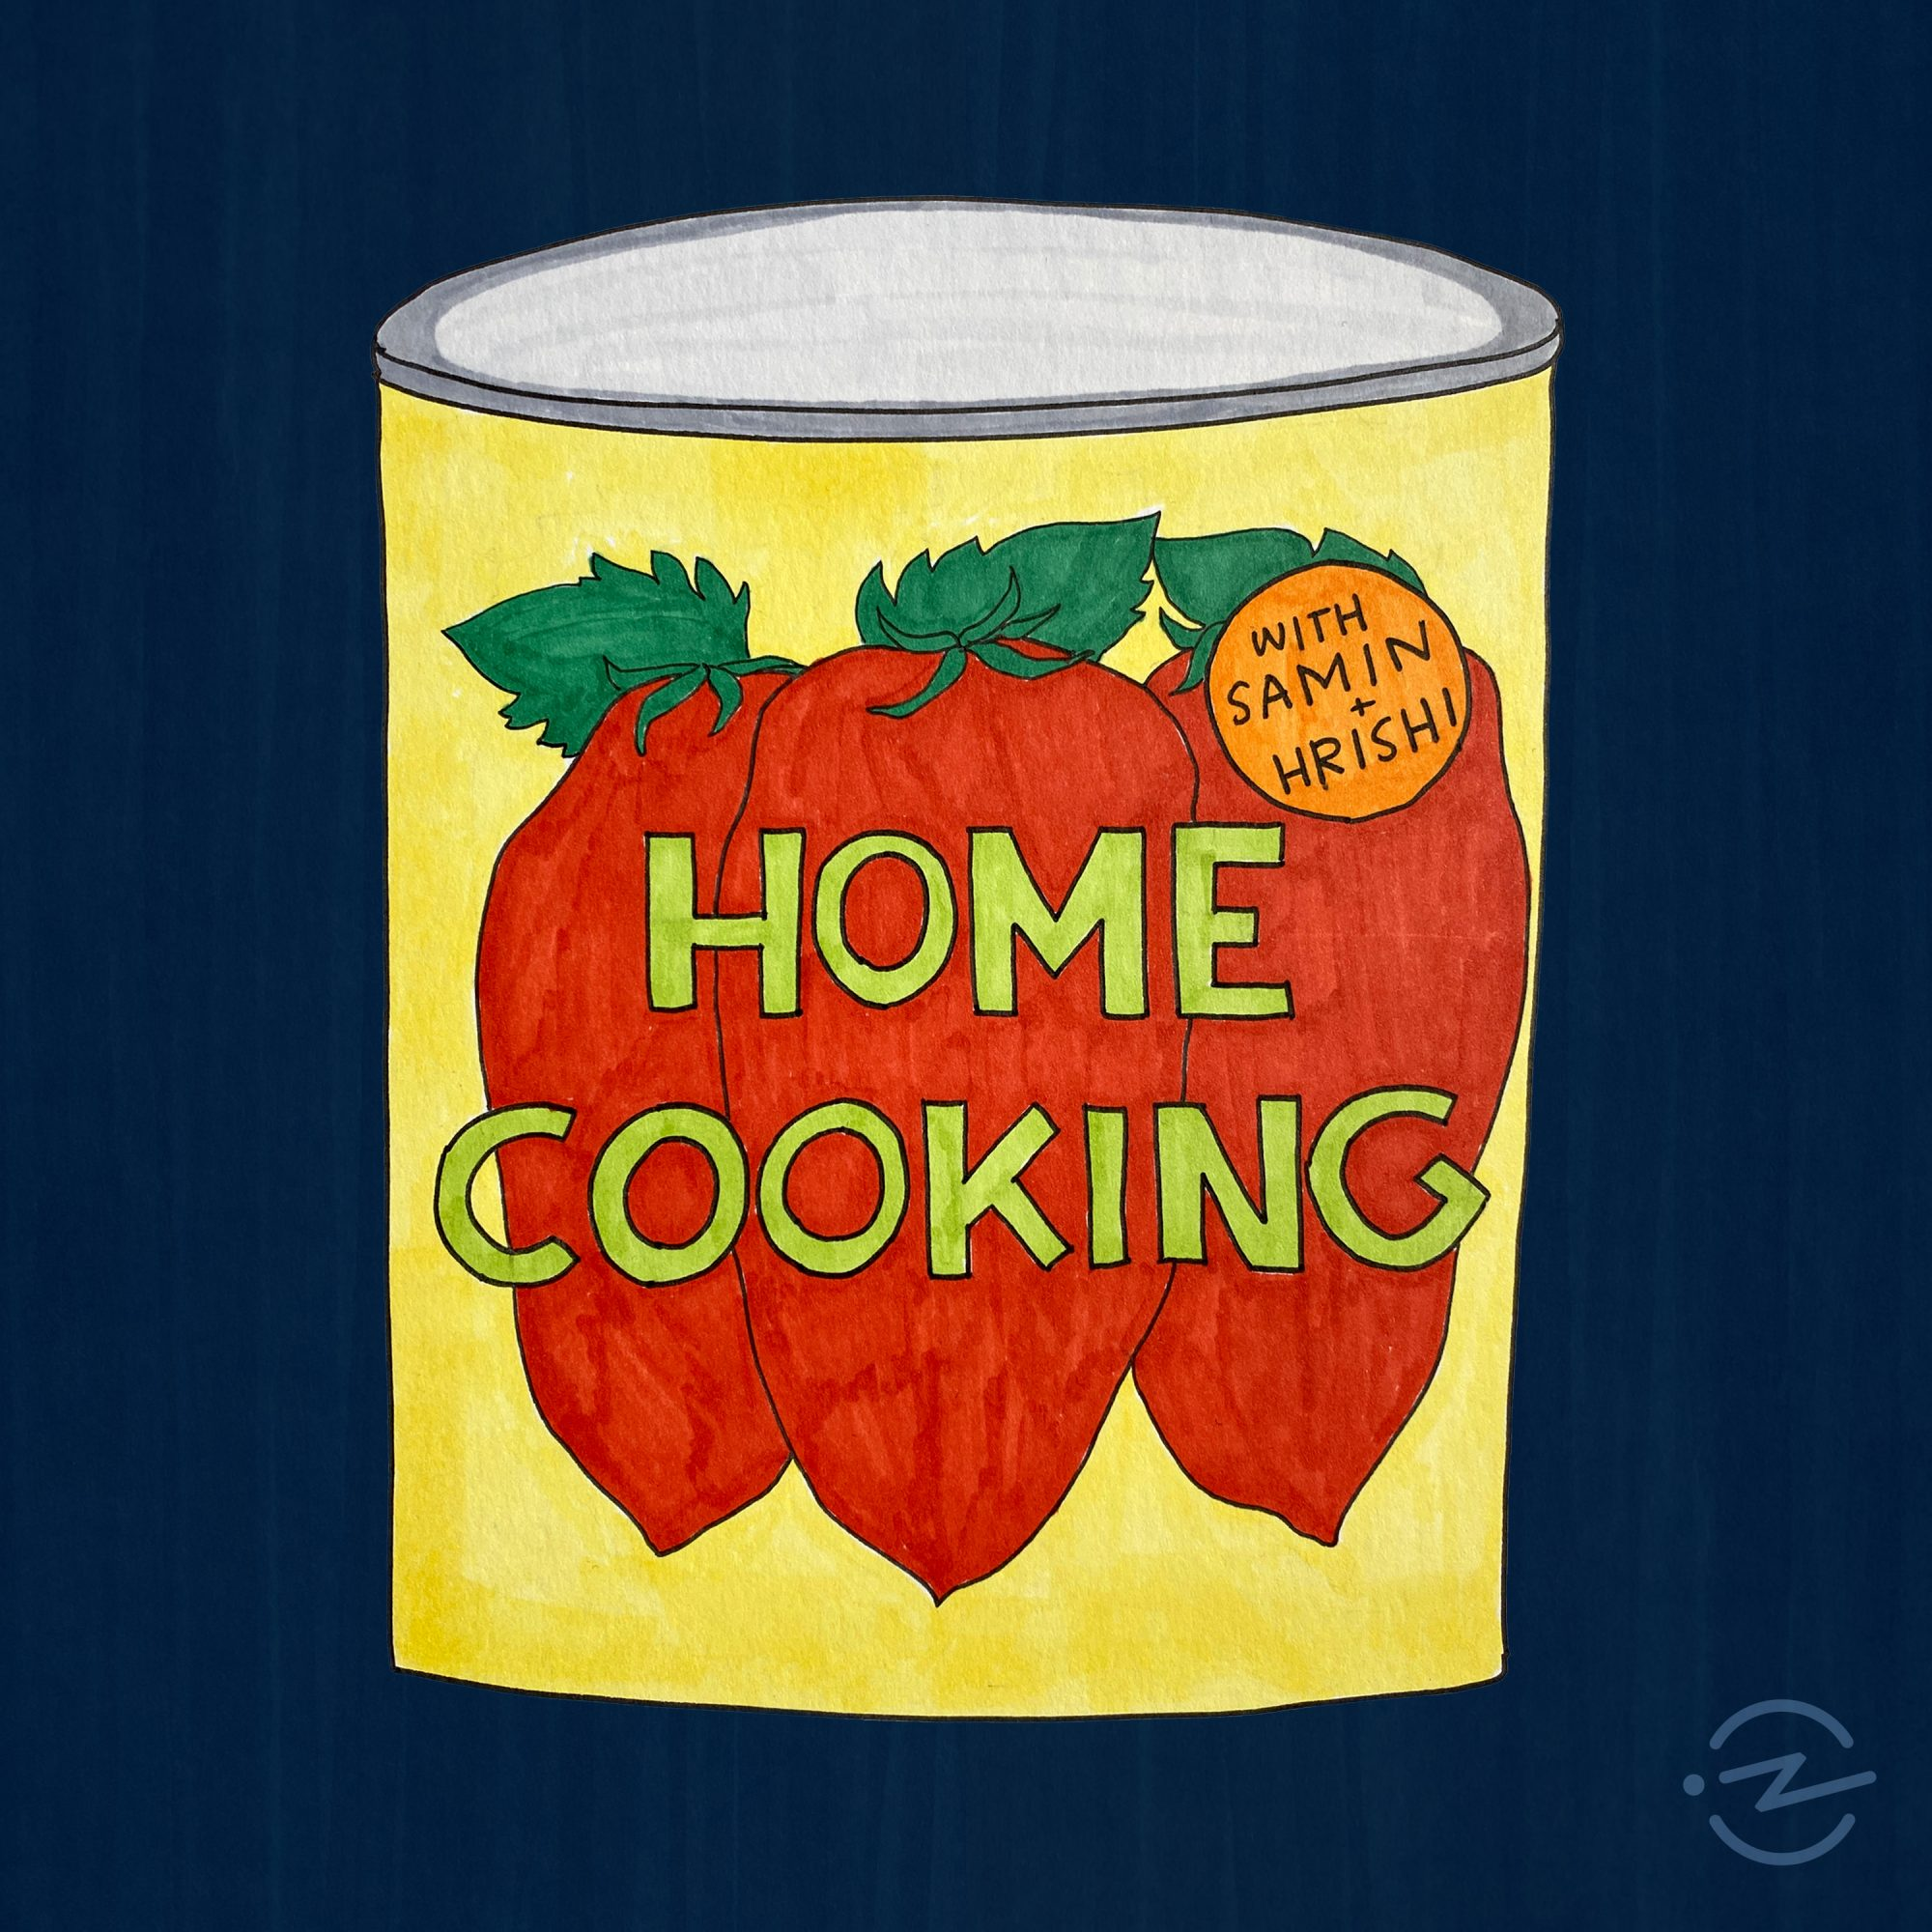 Home Cooking